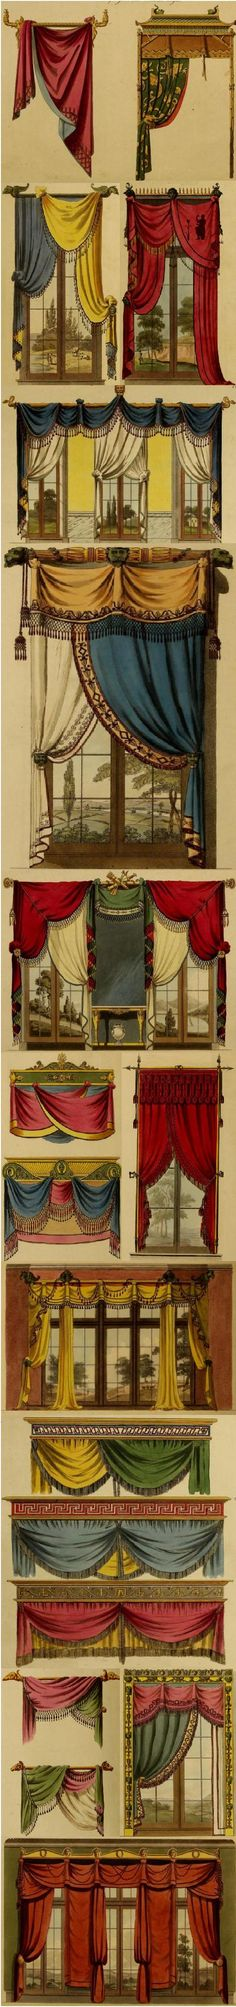 "Drapery ideas from 1808 in the book, ""Collection of Designs for Household Furniture and Interior Decoration, in the Most Approved and Elegant Taste."" Available on the DIY Collaboratorium's library page. Victorian Interiors, Victorian Decor, Victorian Homes, Victorian Curtains, Window Coverings, Window Treatments, Passementerie, Window Dressings, Drapes Curtains"